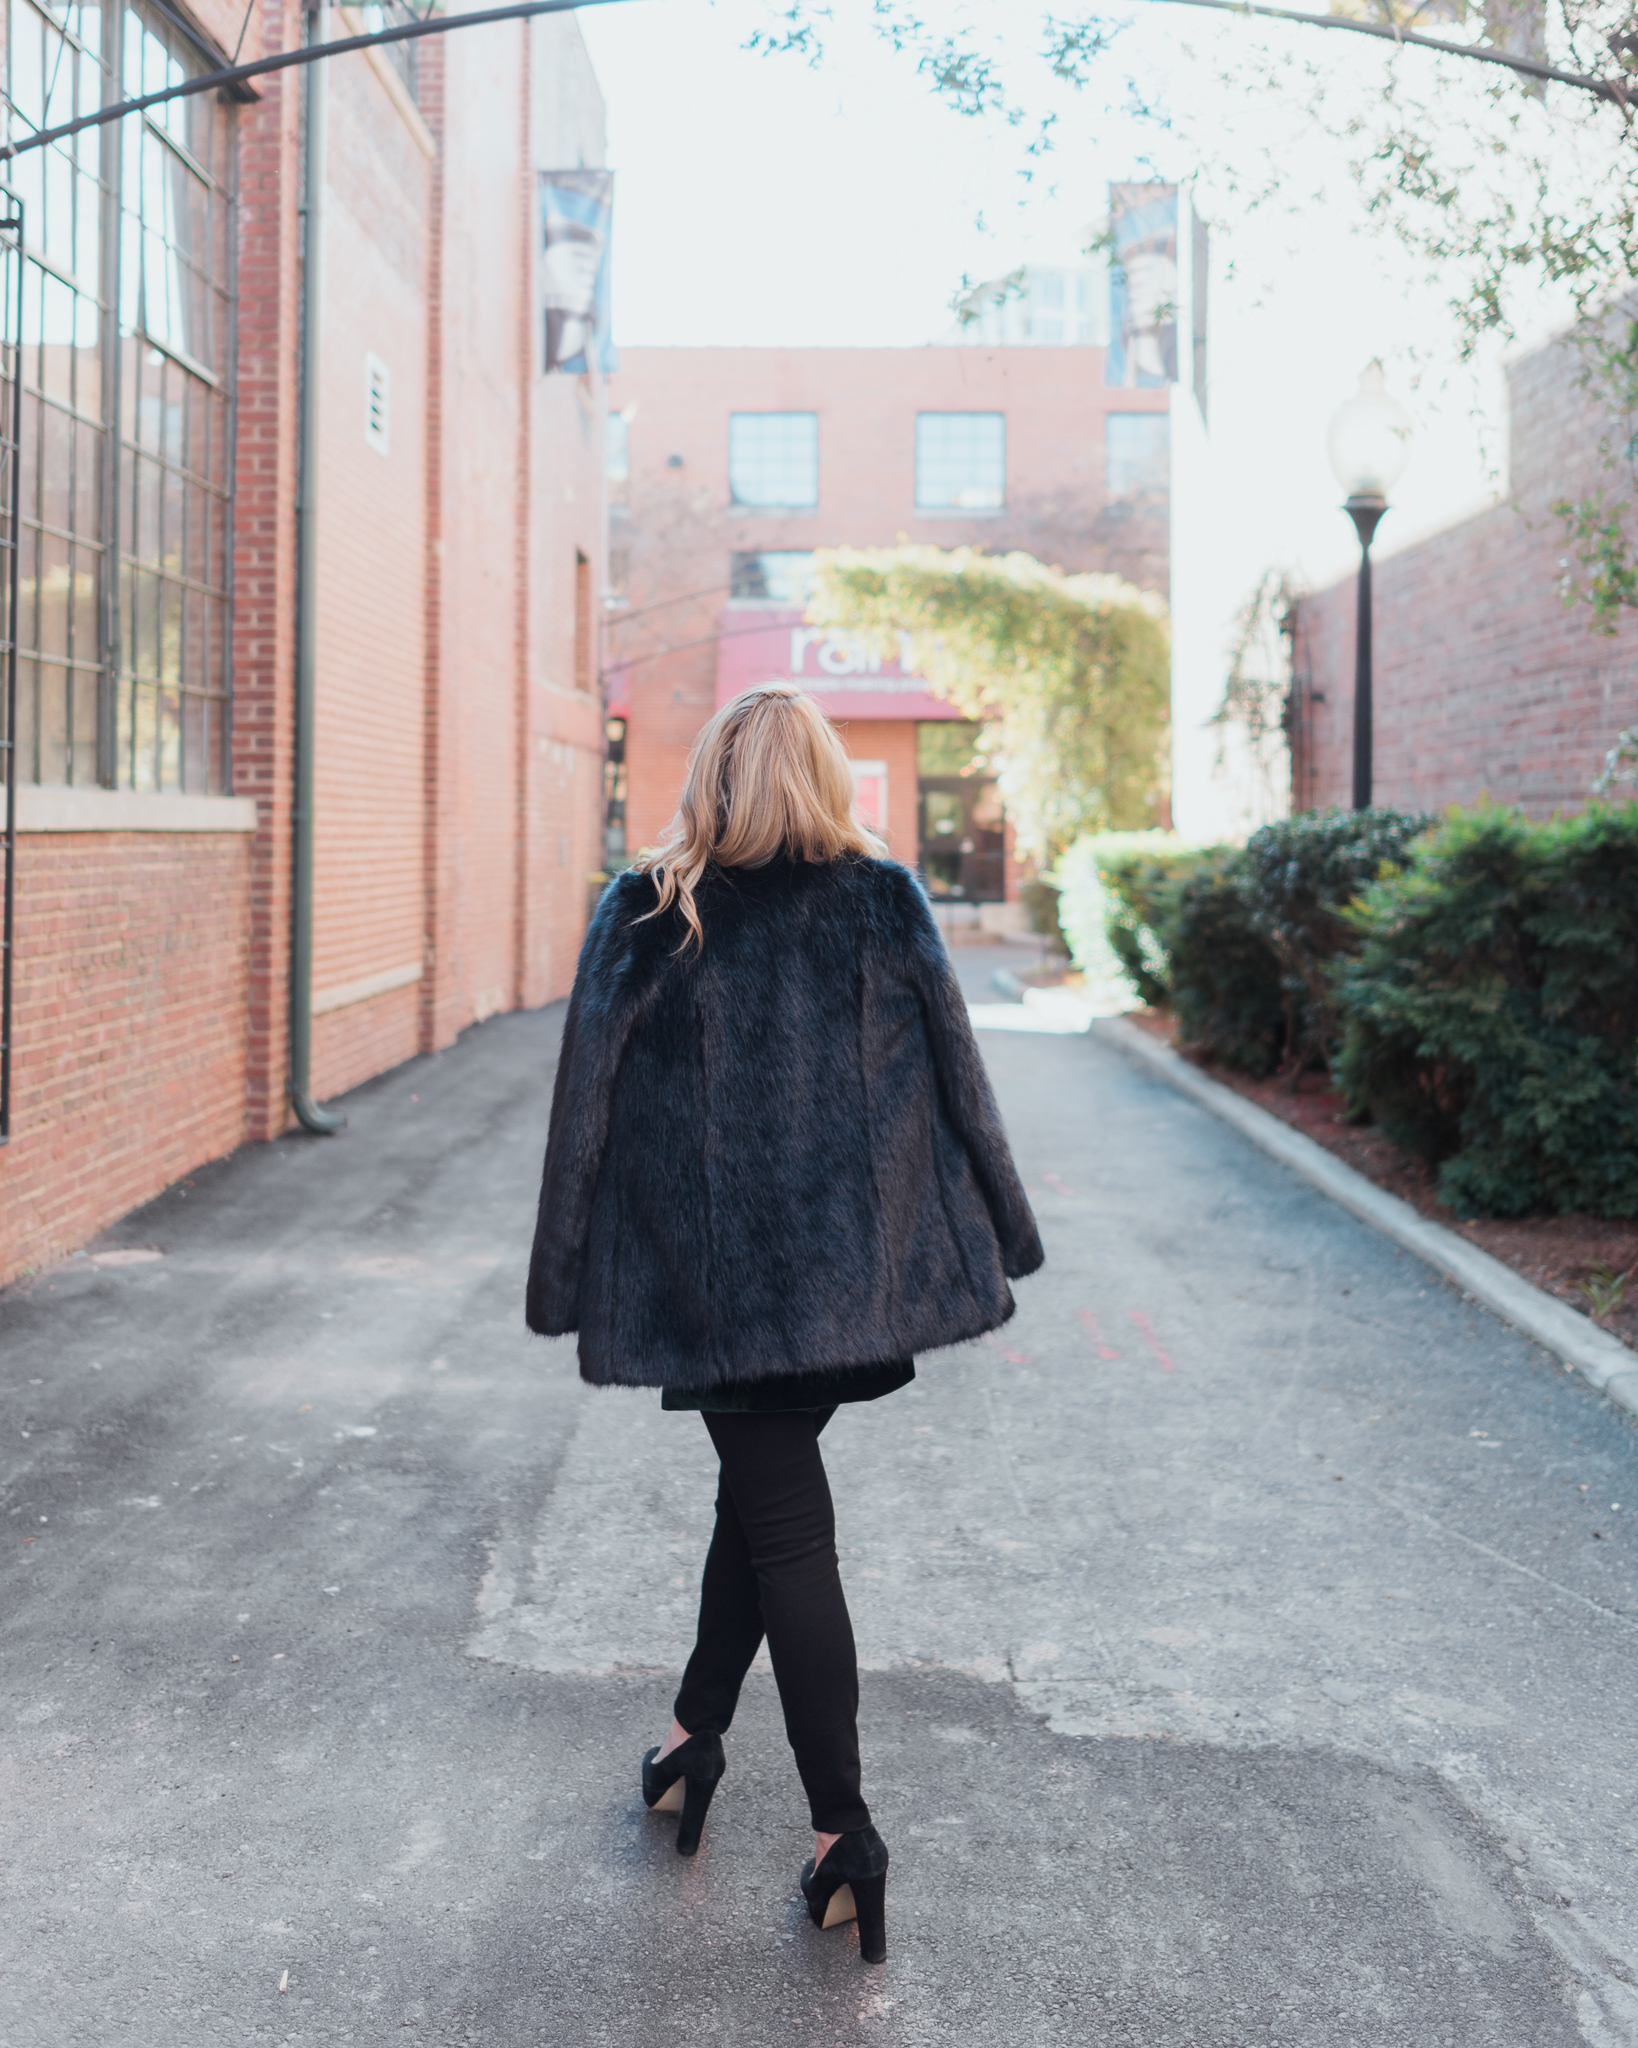 Winter has arrived! The weather in Charlotte has been so cold. Find out how to wear winter layers on Every Chic Way today!